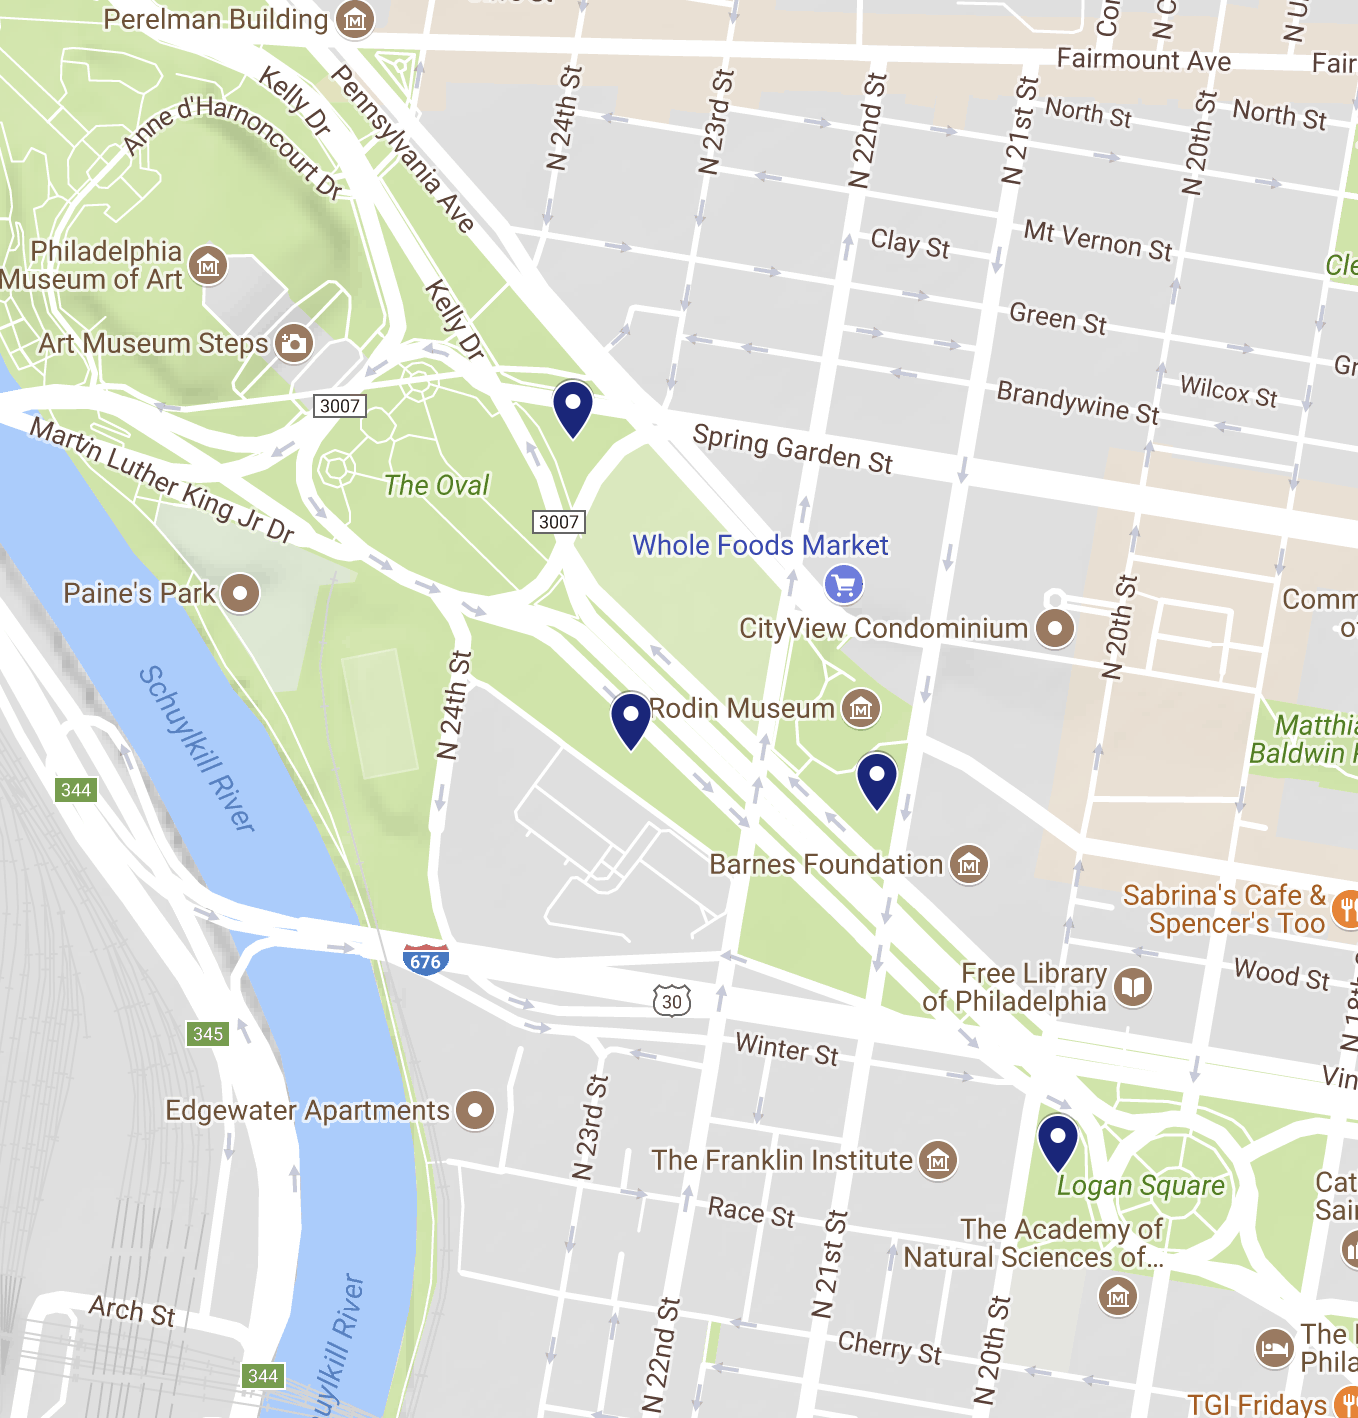 The 4 spots where the winter fountains are! - Photo courtesy of google :)